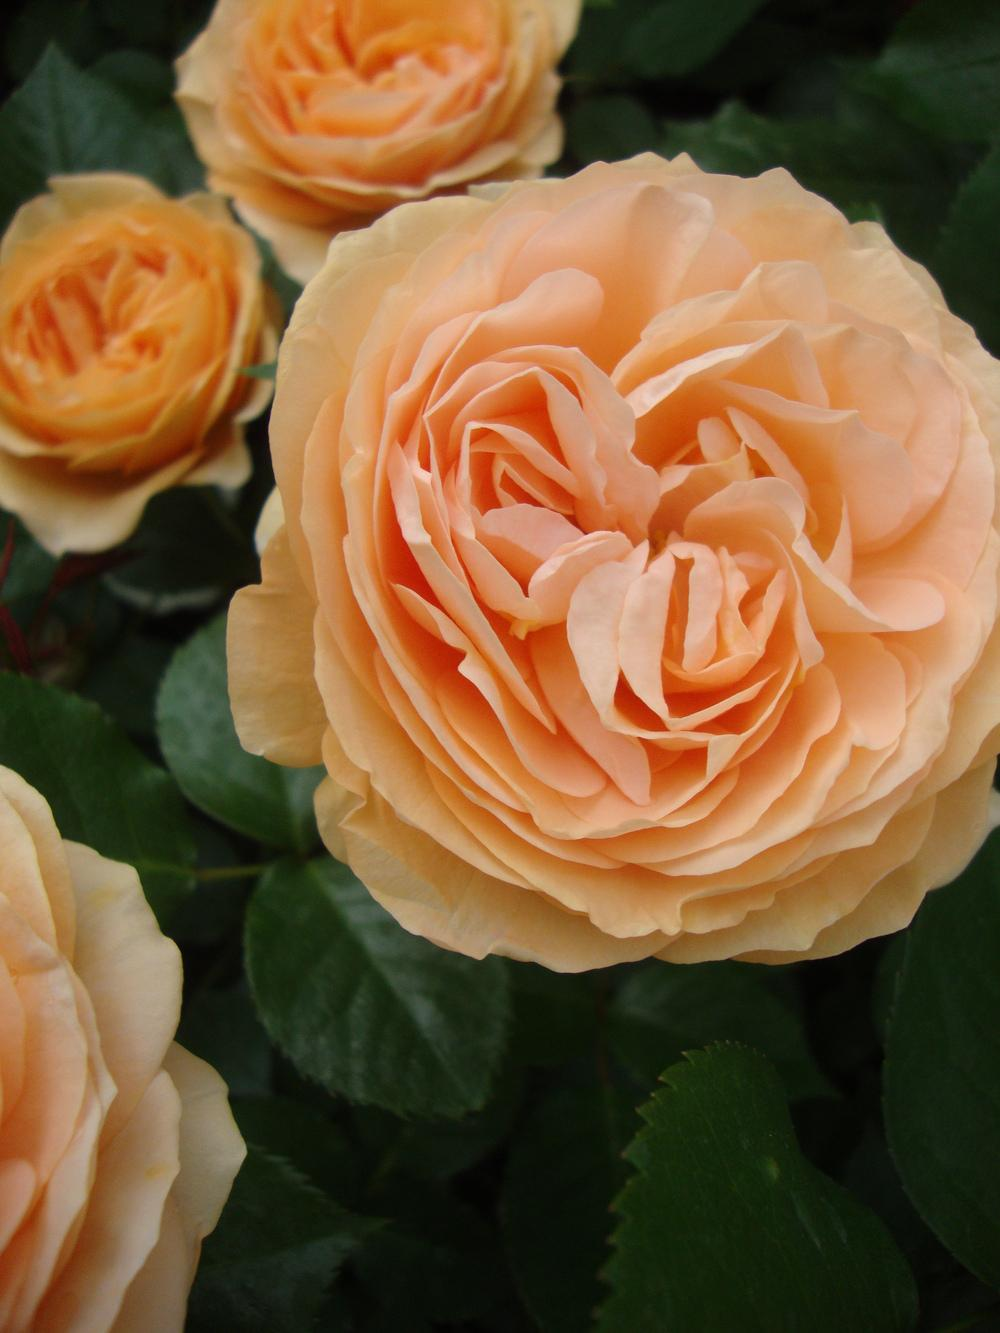 Photo of Roses (Rosa) uploaded by Paul2032